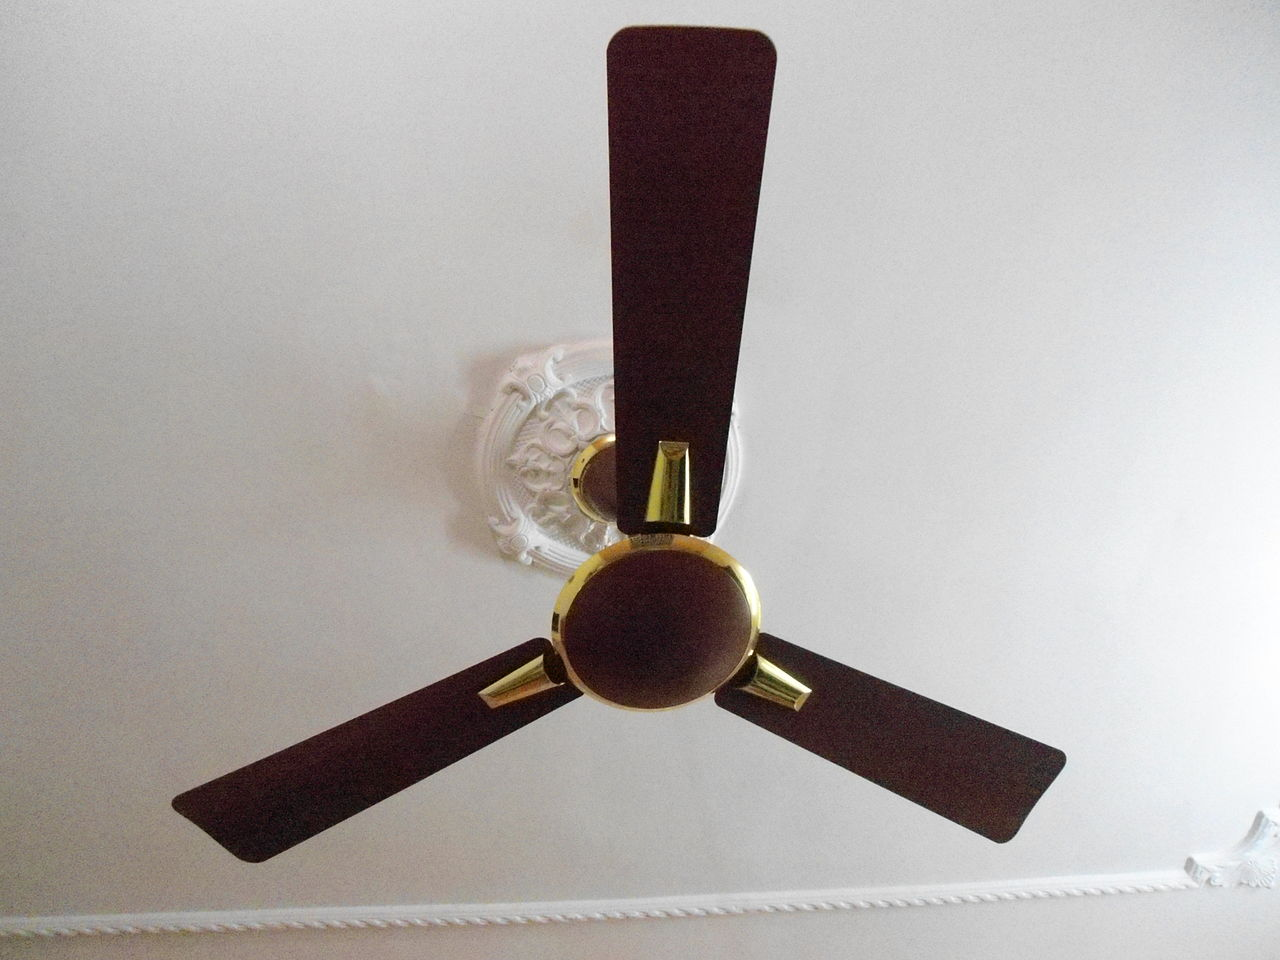 lights three tech p fans without fan in ceiling radionic bs hi brushed pertoria ceilings da blade mf stainless